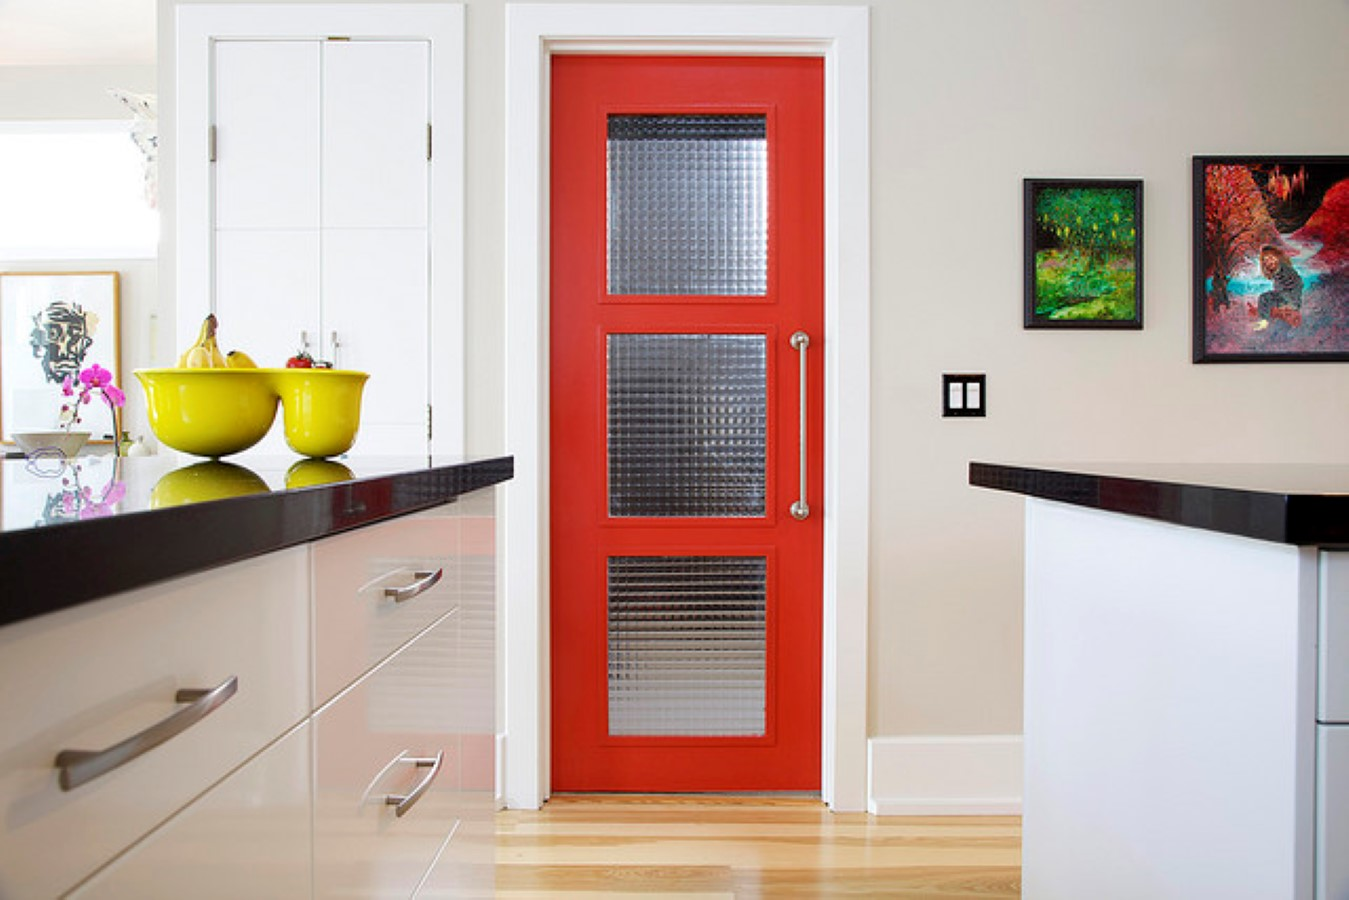 Home Priority Stunning Red Door Ideas To Energize The Home